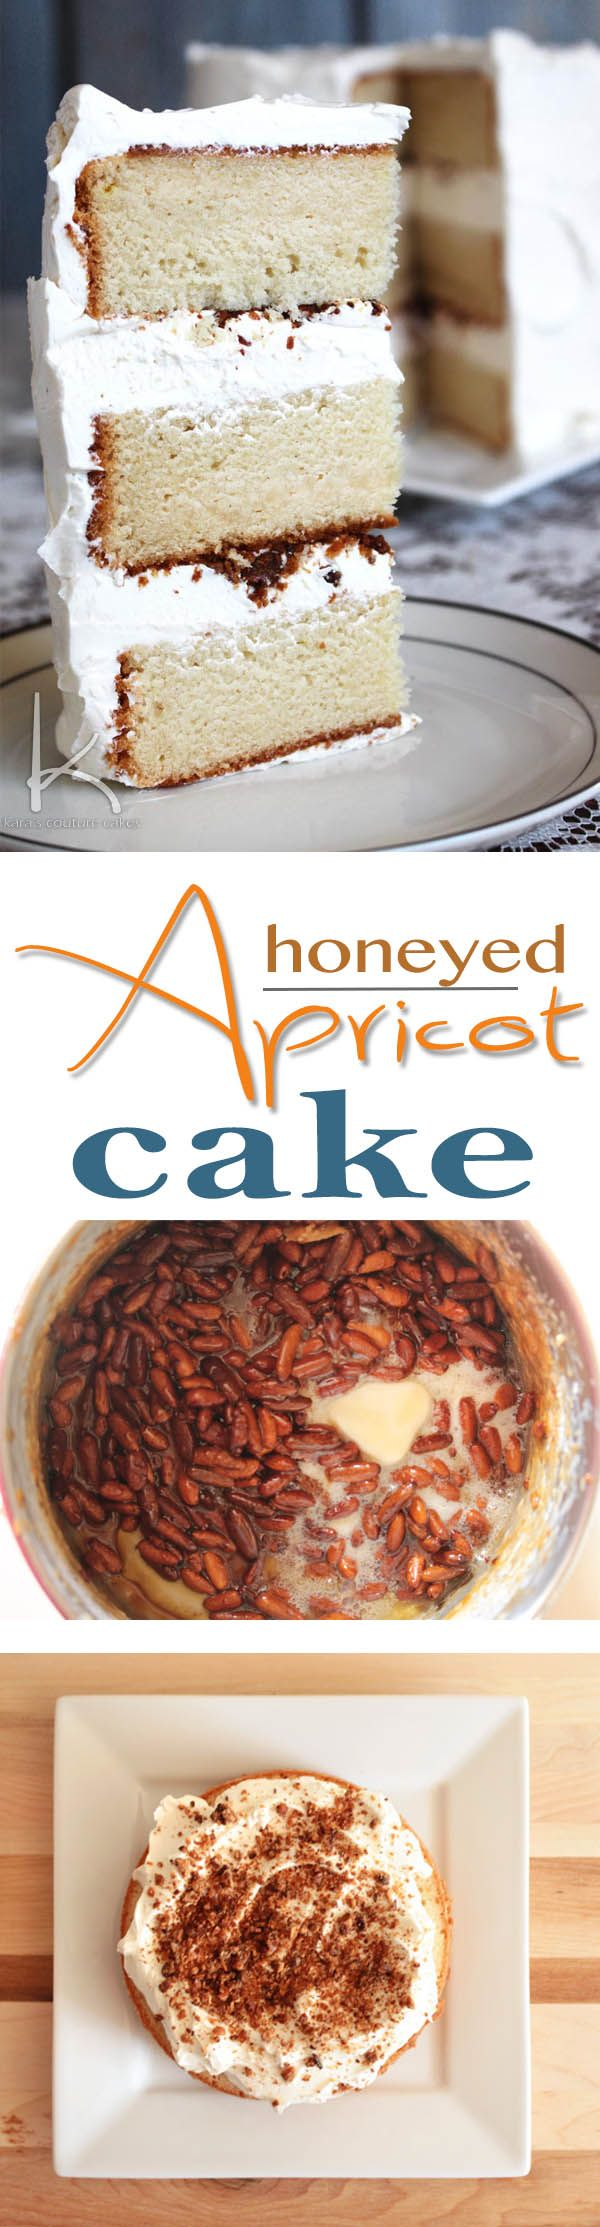 Full recipe and easy step-by-step guide for Kara's Honeyed Apricot Cake as seen on Duff Till Dawn on Food Network. Sweet and delicate honey and apricot cake filled with tonka bean buttercream and candied pignoli (pine nut) crunch.